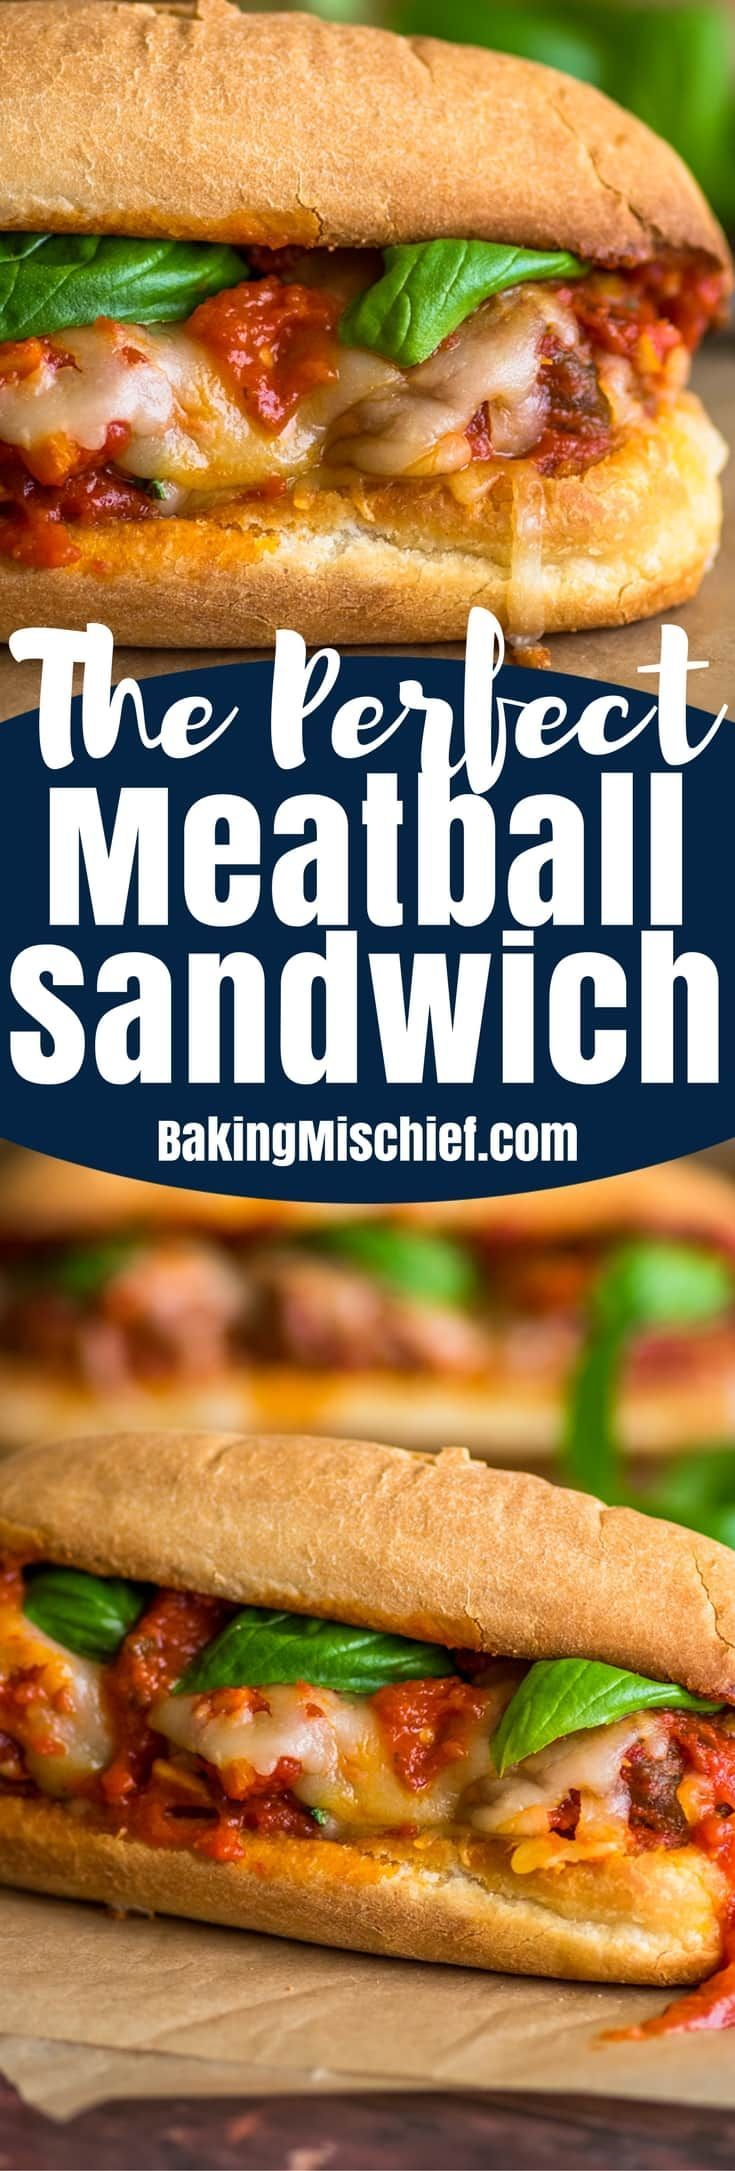 This is The Perfect Meatball Sandwich, made on toasted, buttery garlic bread, with an easy homemade marinara sauce and my favorite beef and sausage meatballs. #sandwiches #meatballs #dinner